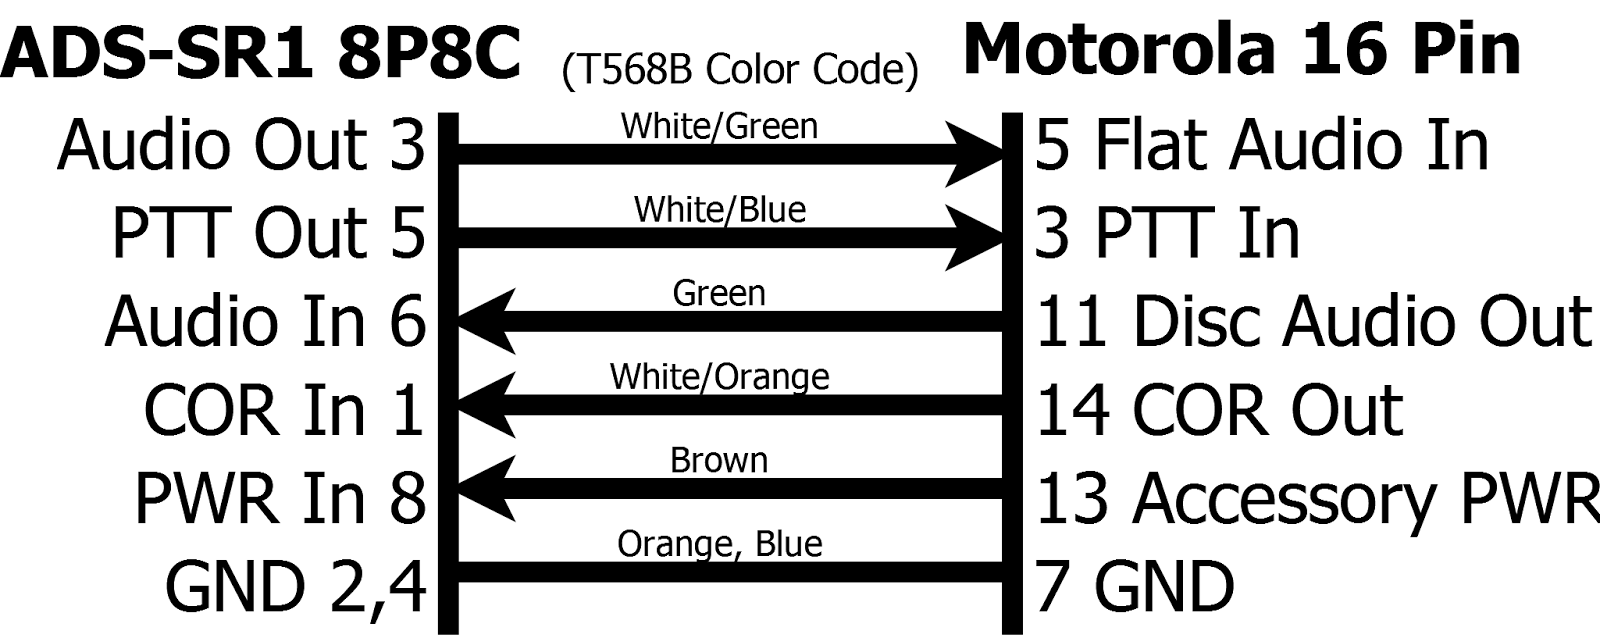 medium resolution of pinout diagram for the interface cable including the color code assuming that you crimp the ads sr1 side as if it were a standard t568b ethernet cable or